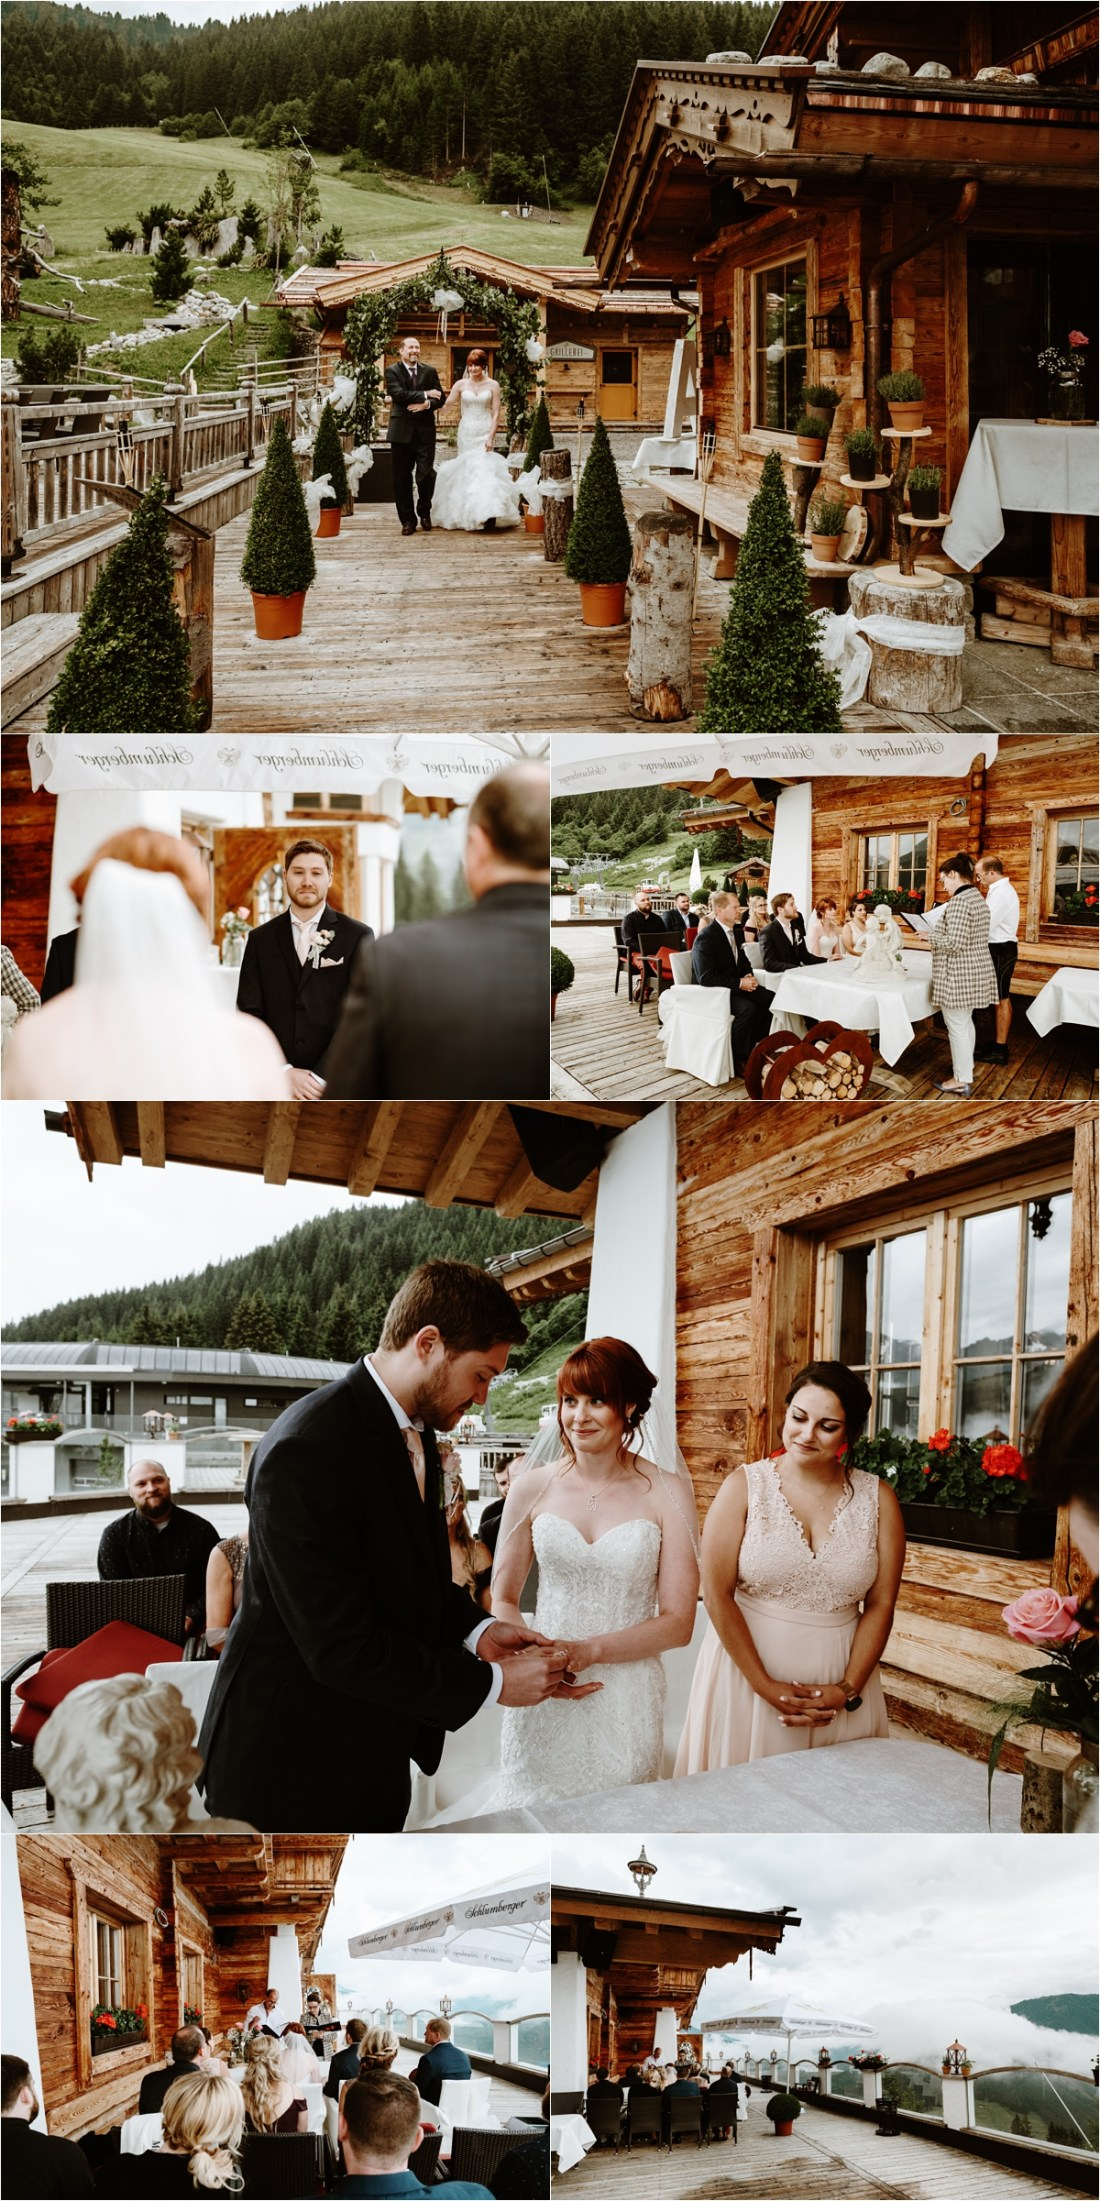 An outdoor mountain wedding ceremony at the Rössl Alm in Austria. Photos by Wild Connections Photography